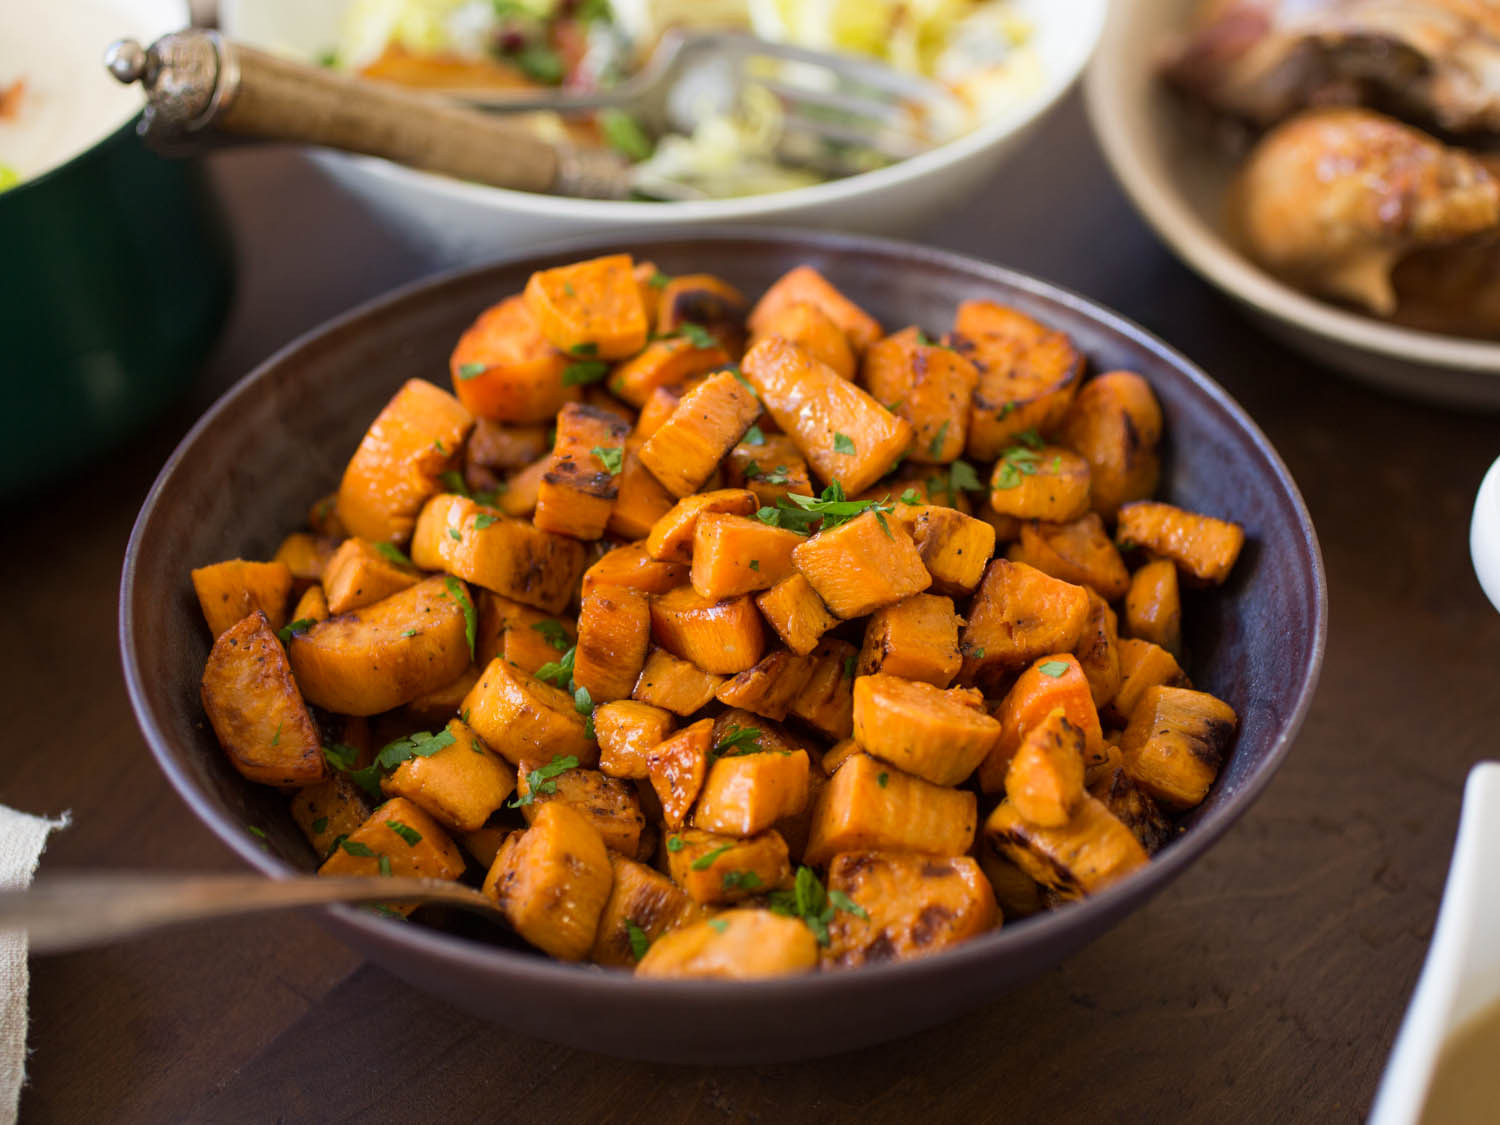 Sweet Potatoes Recipe For Thanksgiving Dinner  8 Not Too Sweet Sweet Potato Recipes for Thanksgiving